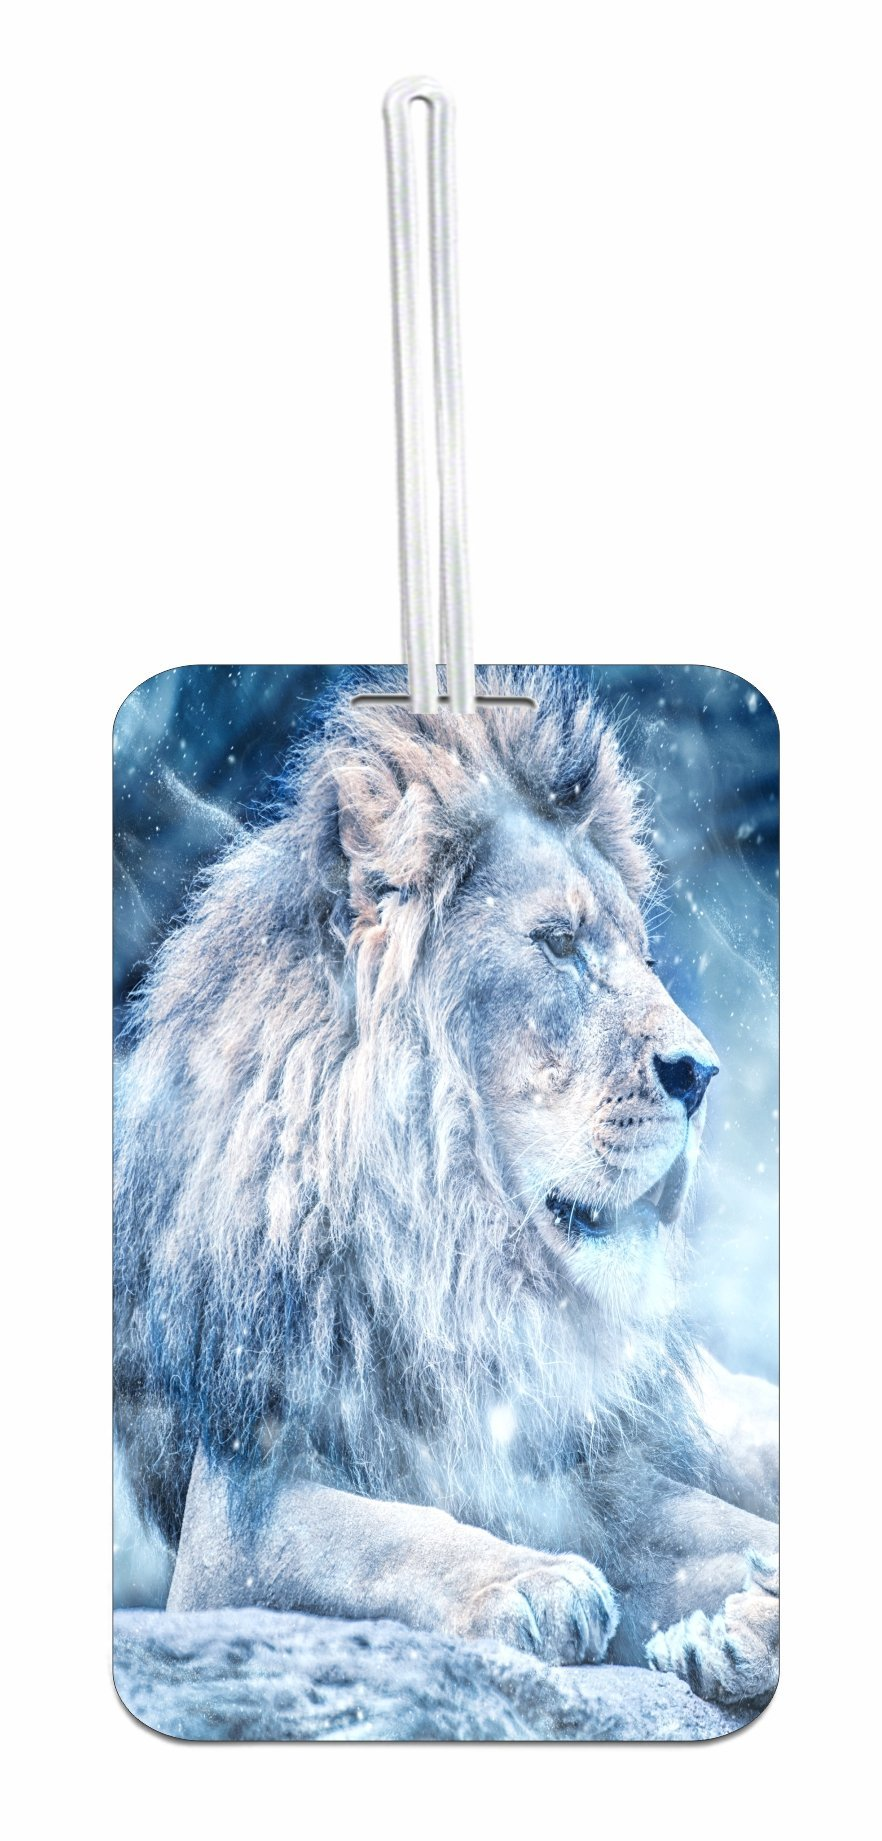 Lion in Snow Frost Design School Bag/Backpack ID Tag with Custom Reverse - Customize Yours Now